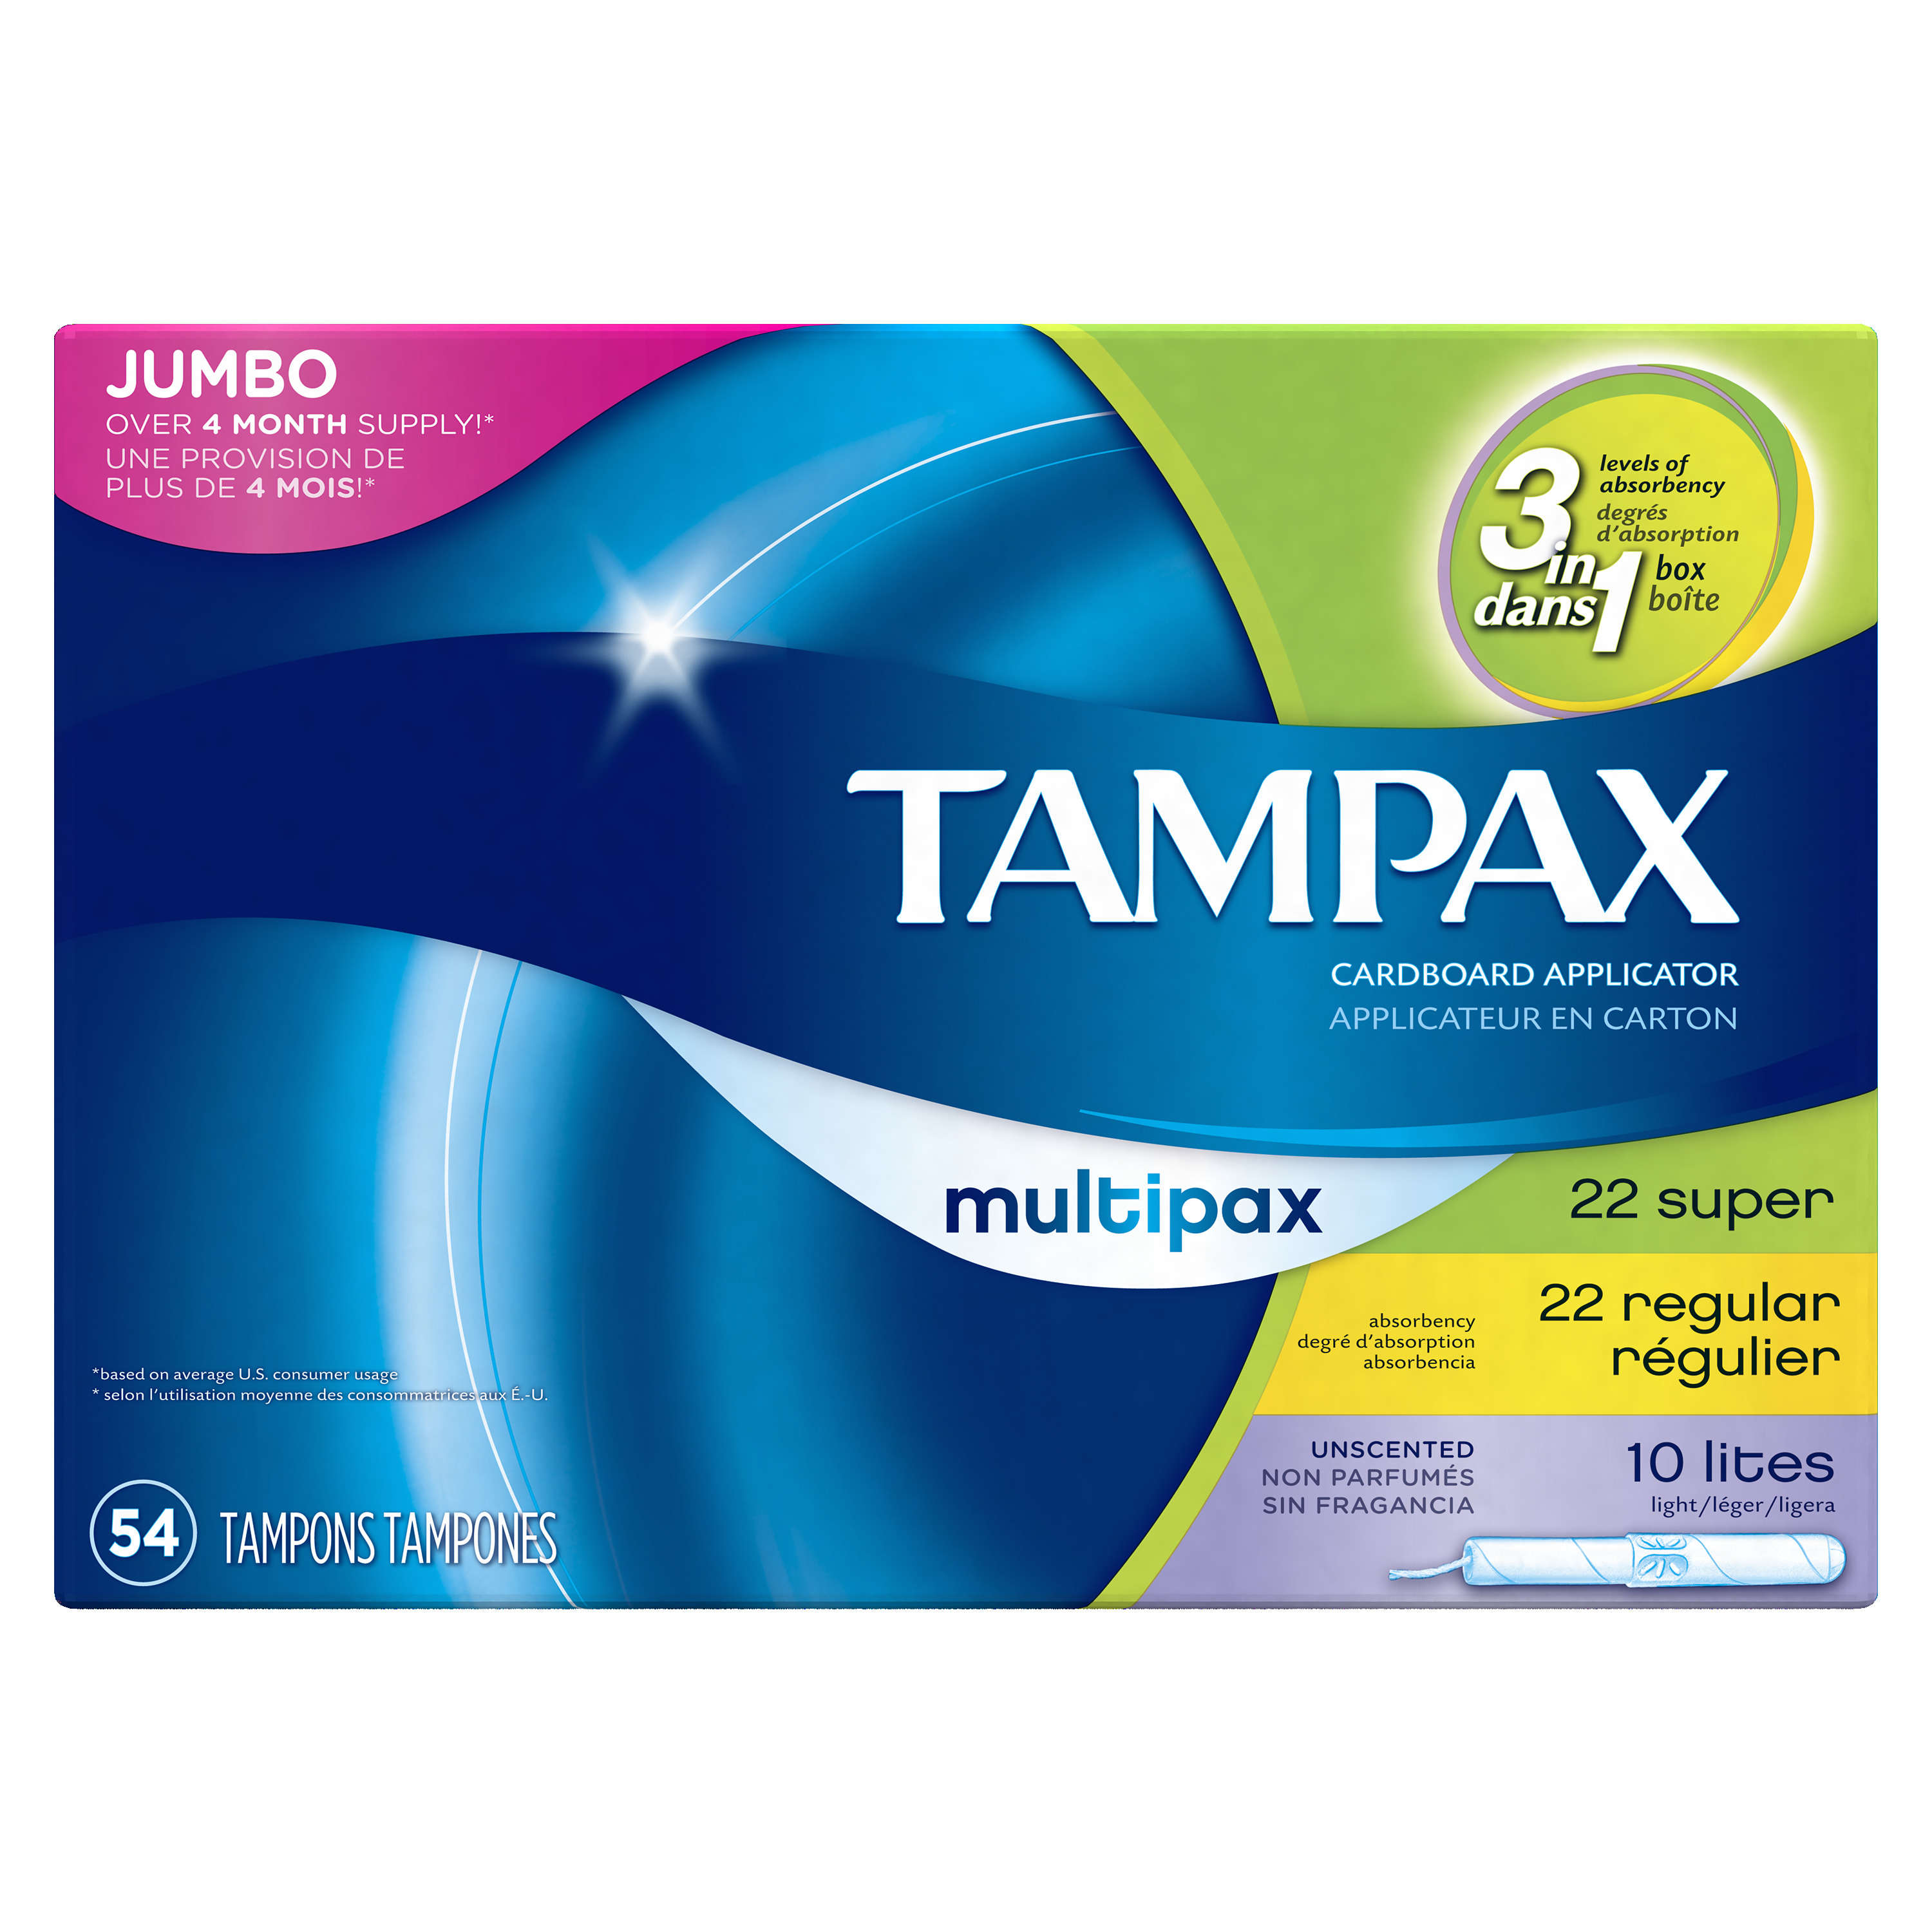 Tampax Cardboard Tampons, Multipack (Light/Regular/Super), Unscented, 54 Count